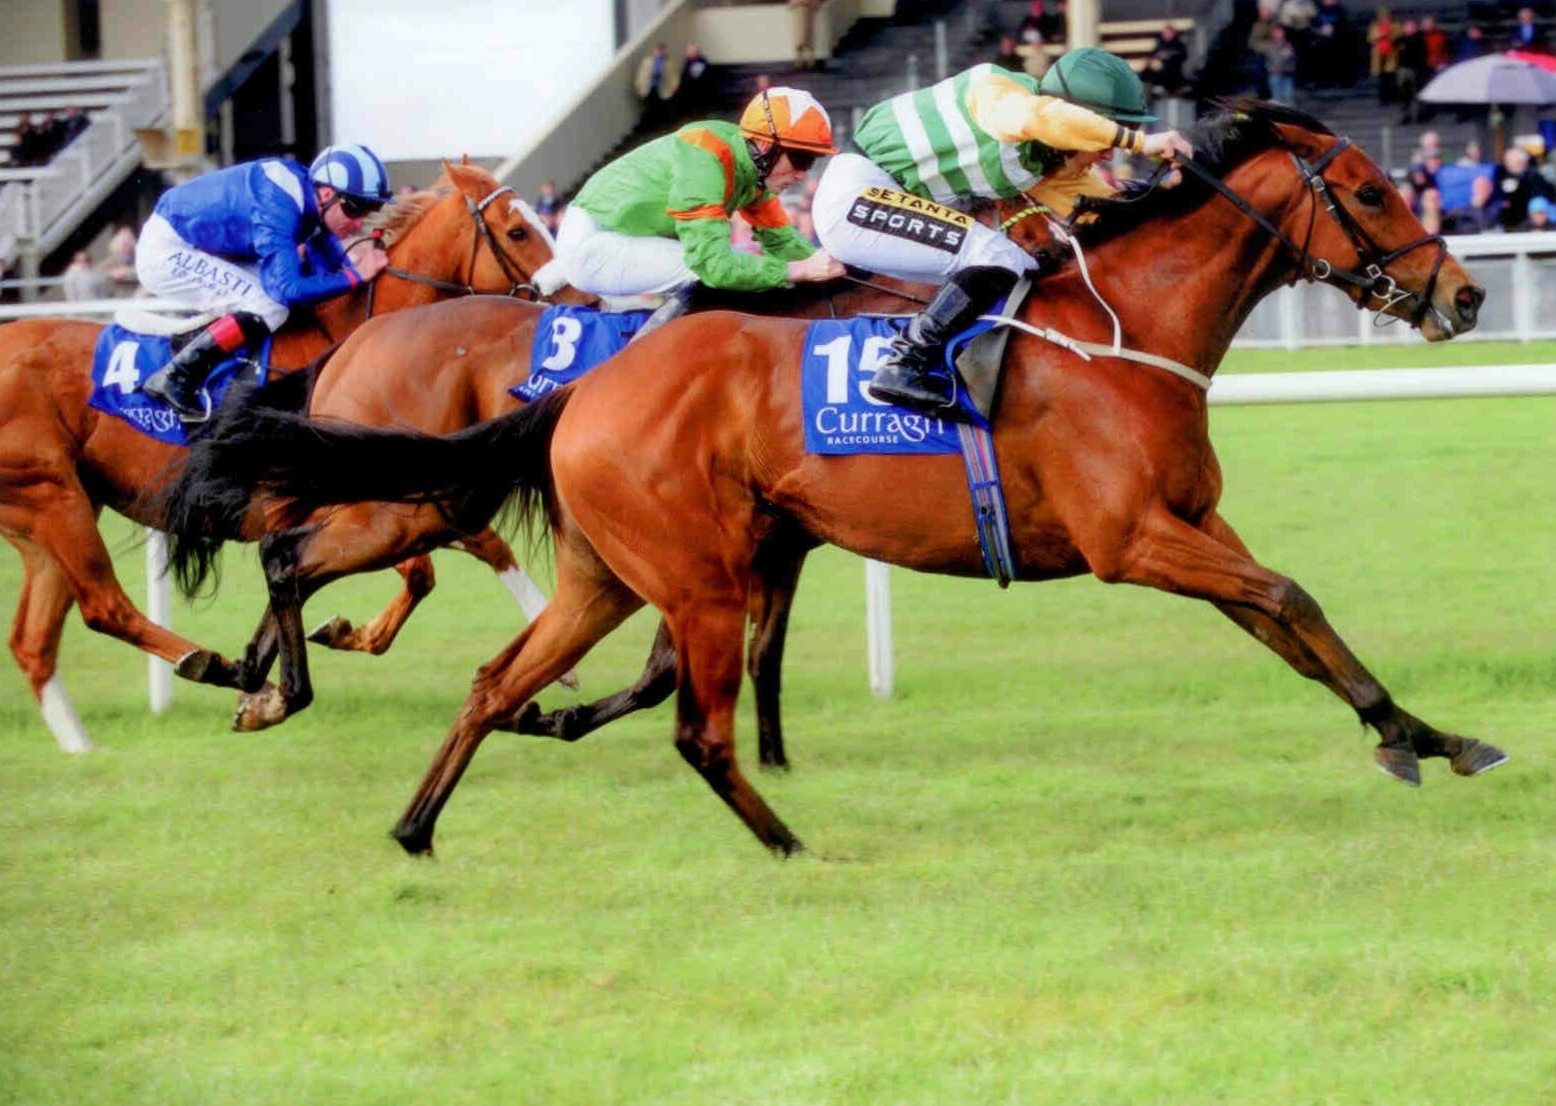 URBESTCHANCE wins first time out at the Curragh on May 4th 2015 for the RMS Syndicate